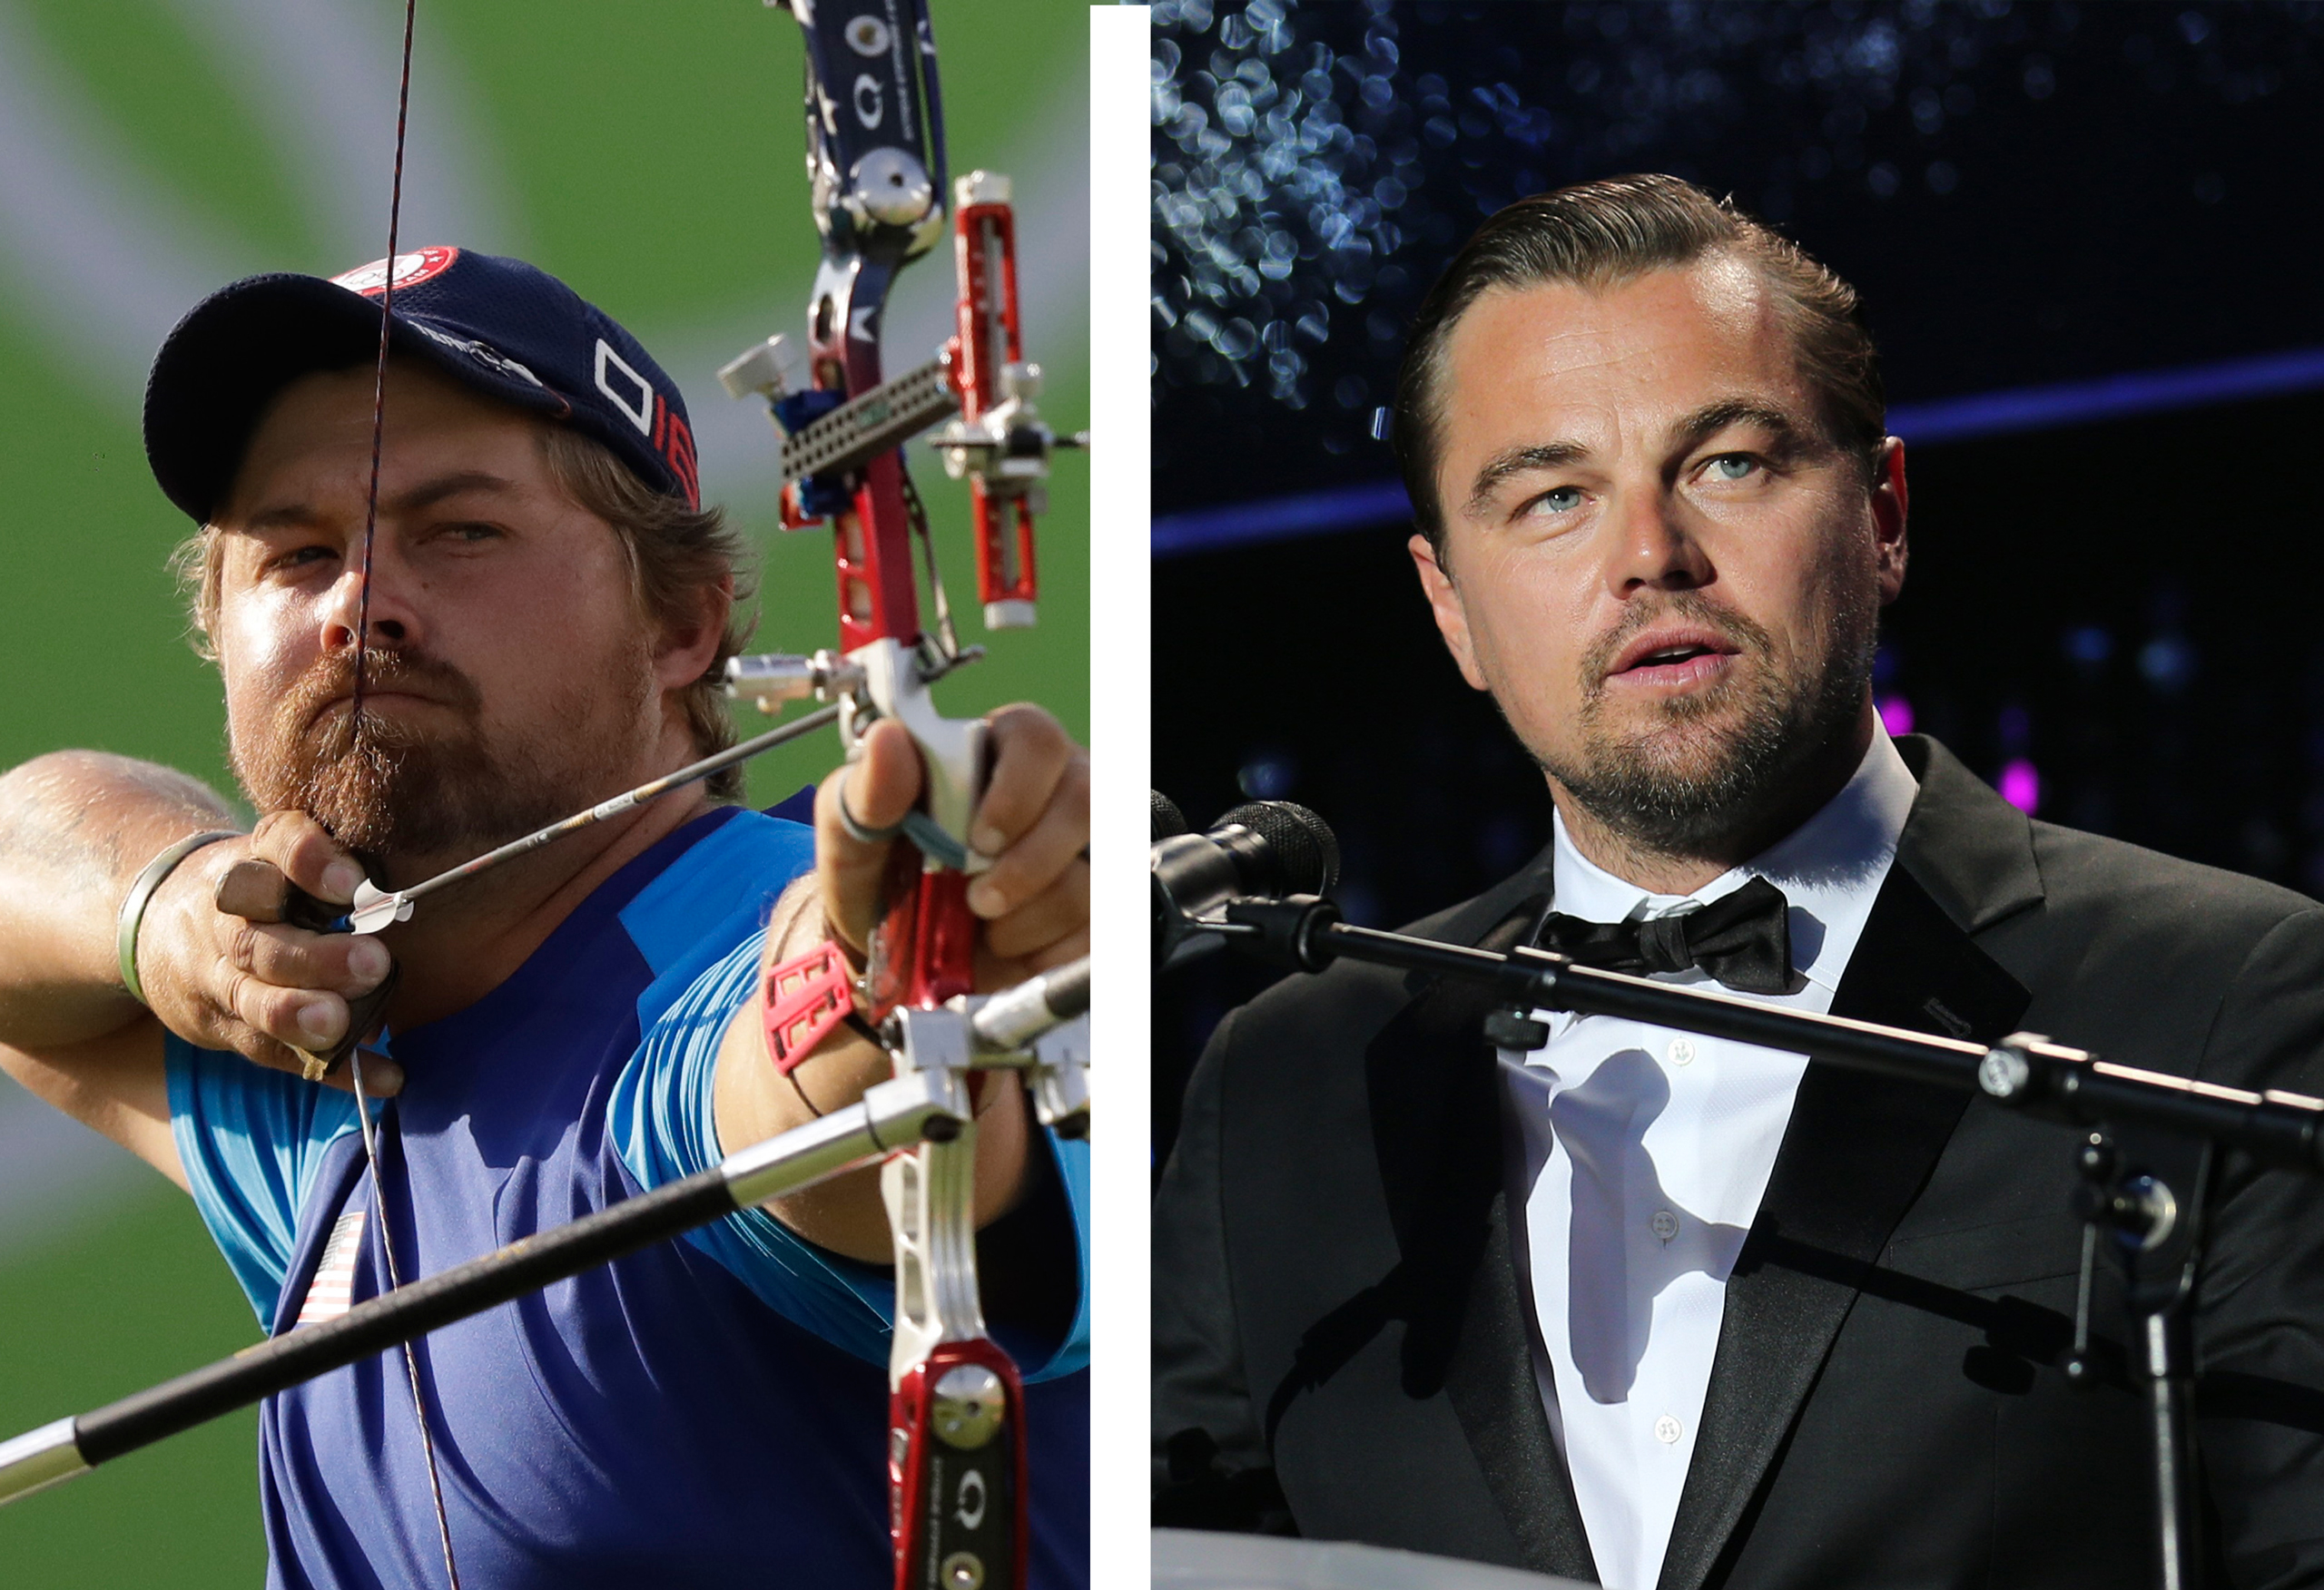 Brady Ellison of the United States and Leonardo DiCaprio.